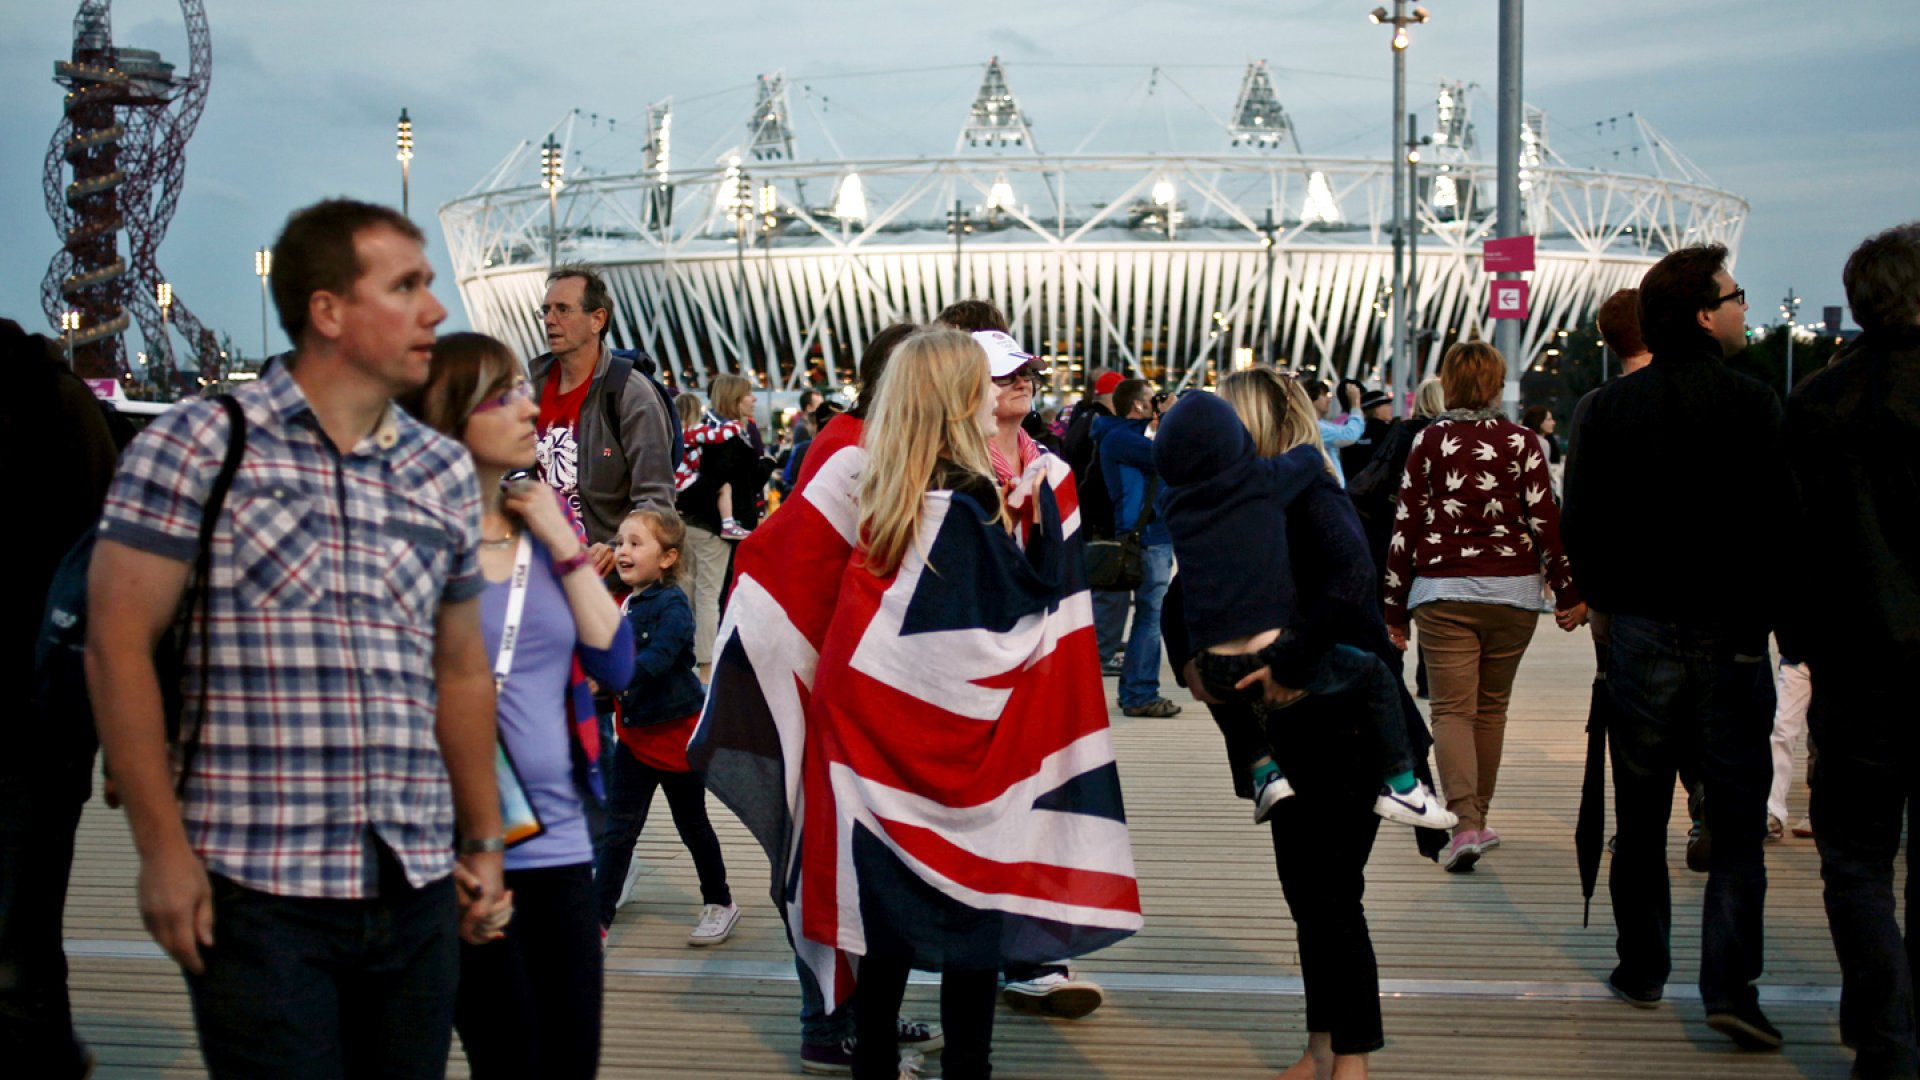 People walk in front of the Olympic stadium at the Olympic park of London during the 2012 Olympic Games.